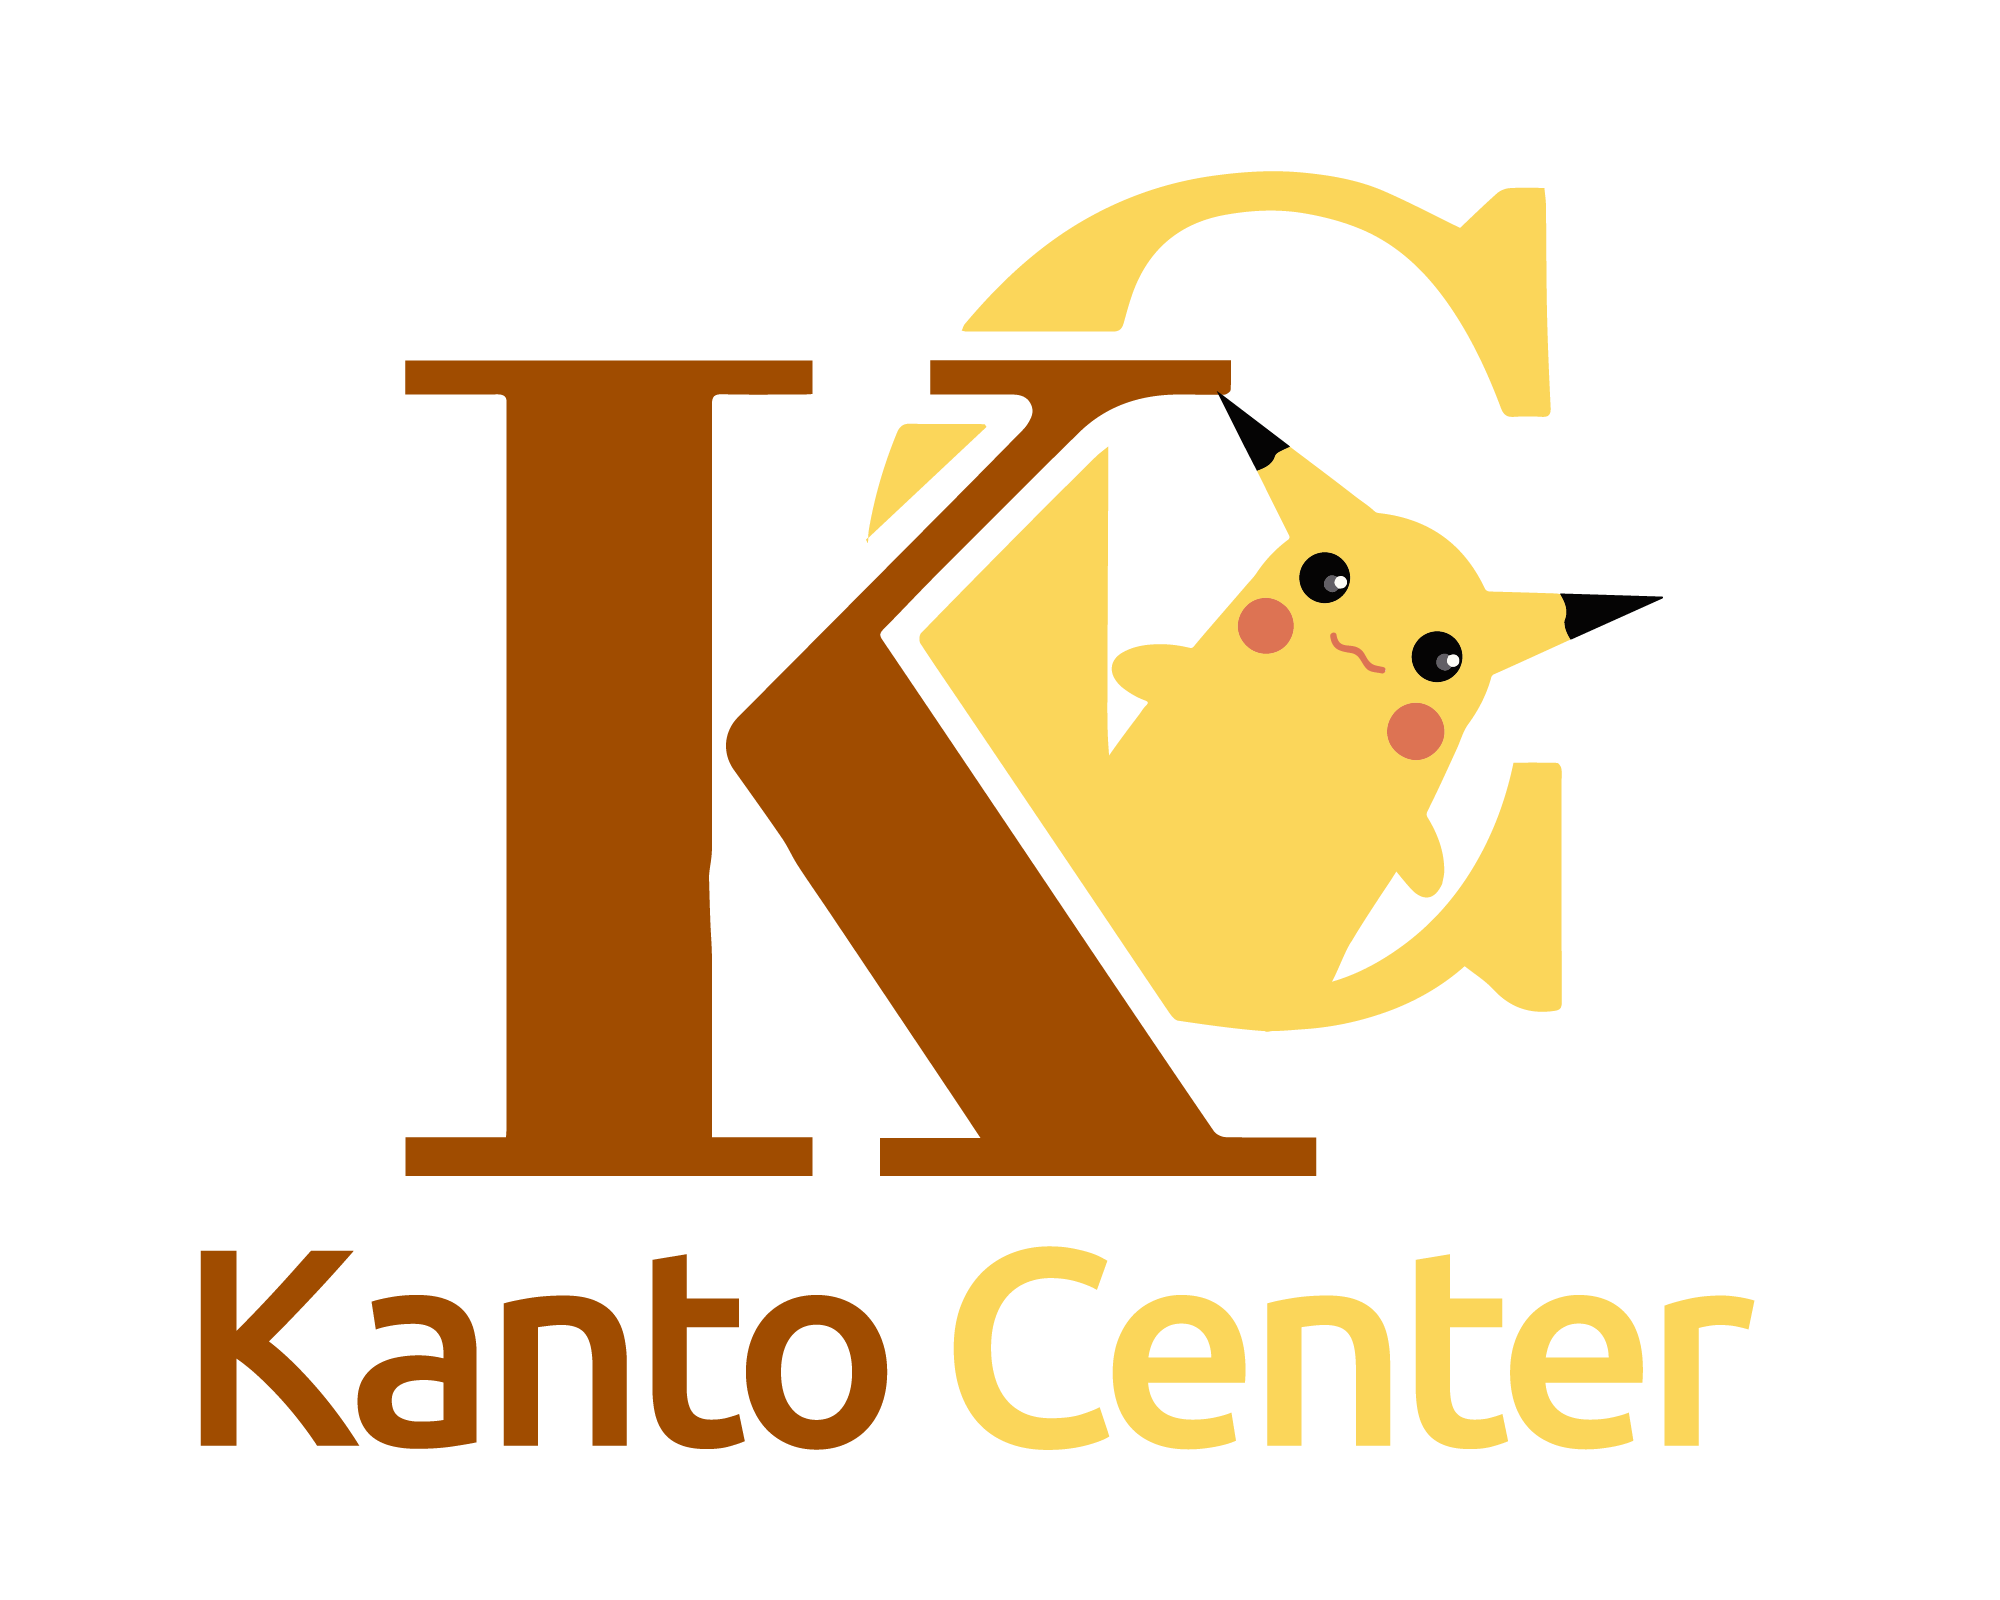 The Kanto Center logo